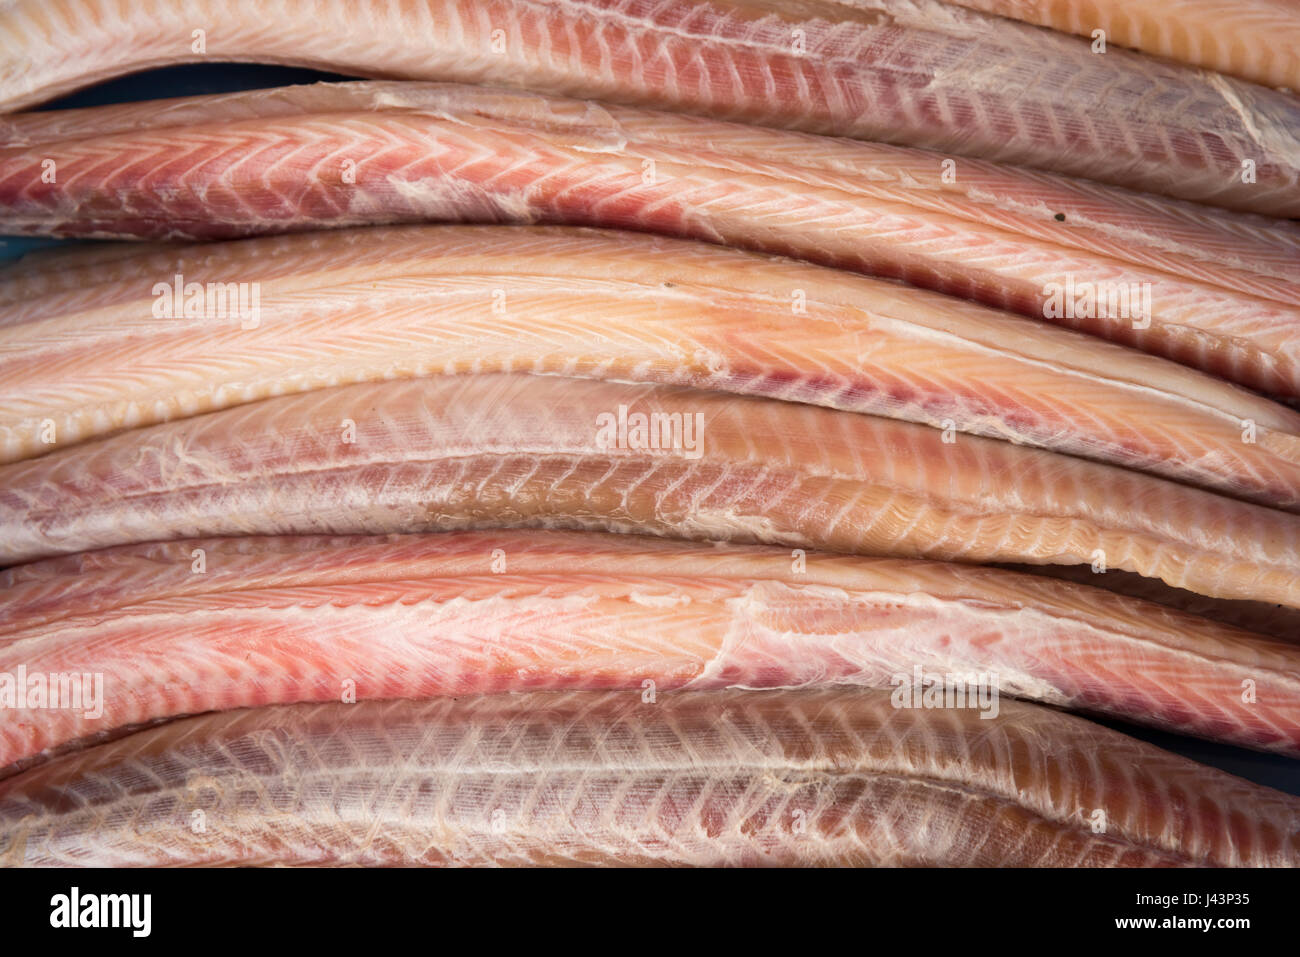 Skinned rock eel or dogfish for sale in a fishmongers or fish shop close up - Stock Image